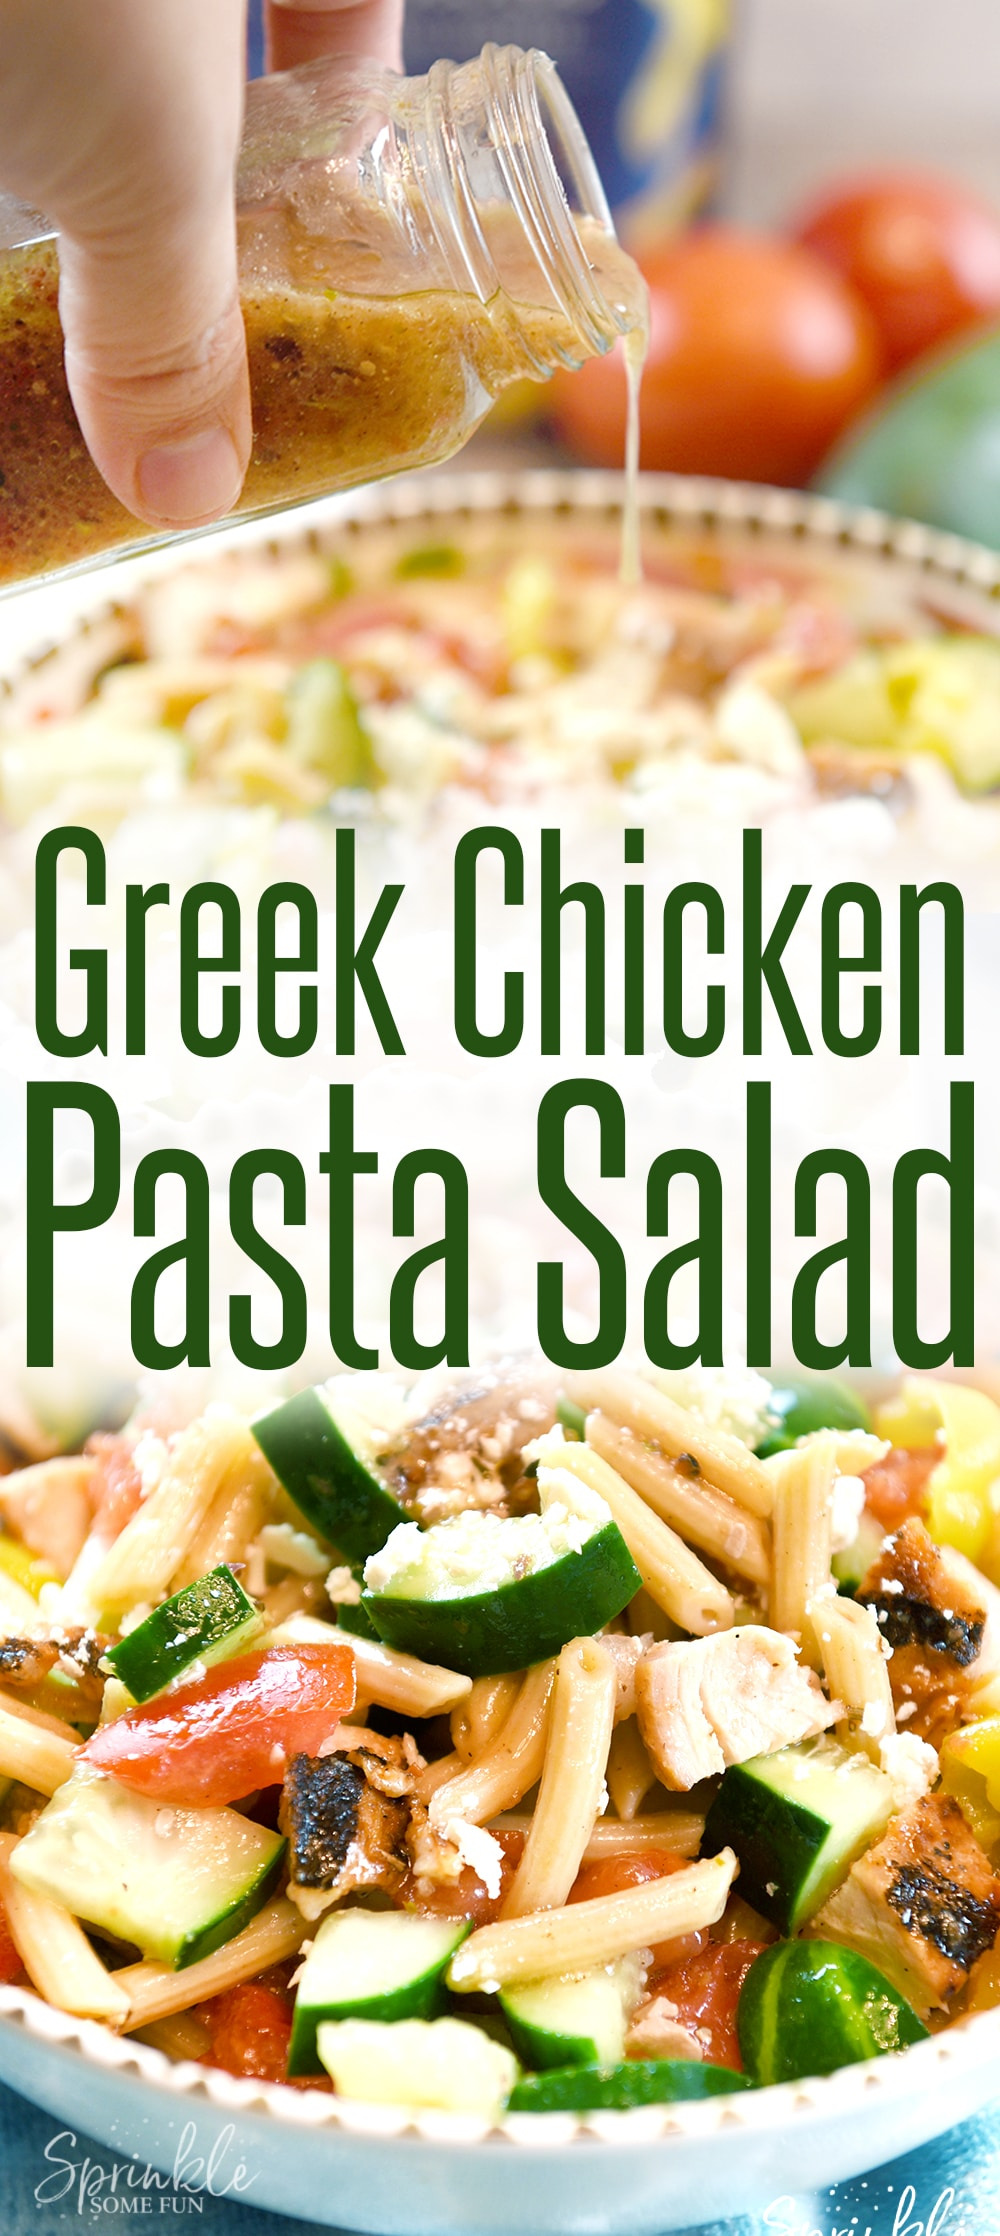 A beautiful and tasty Greek Chicken Pasta Salad made in around 1o minutes! The flavors are bold with a great Greek inspired taste.